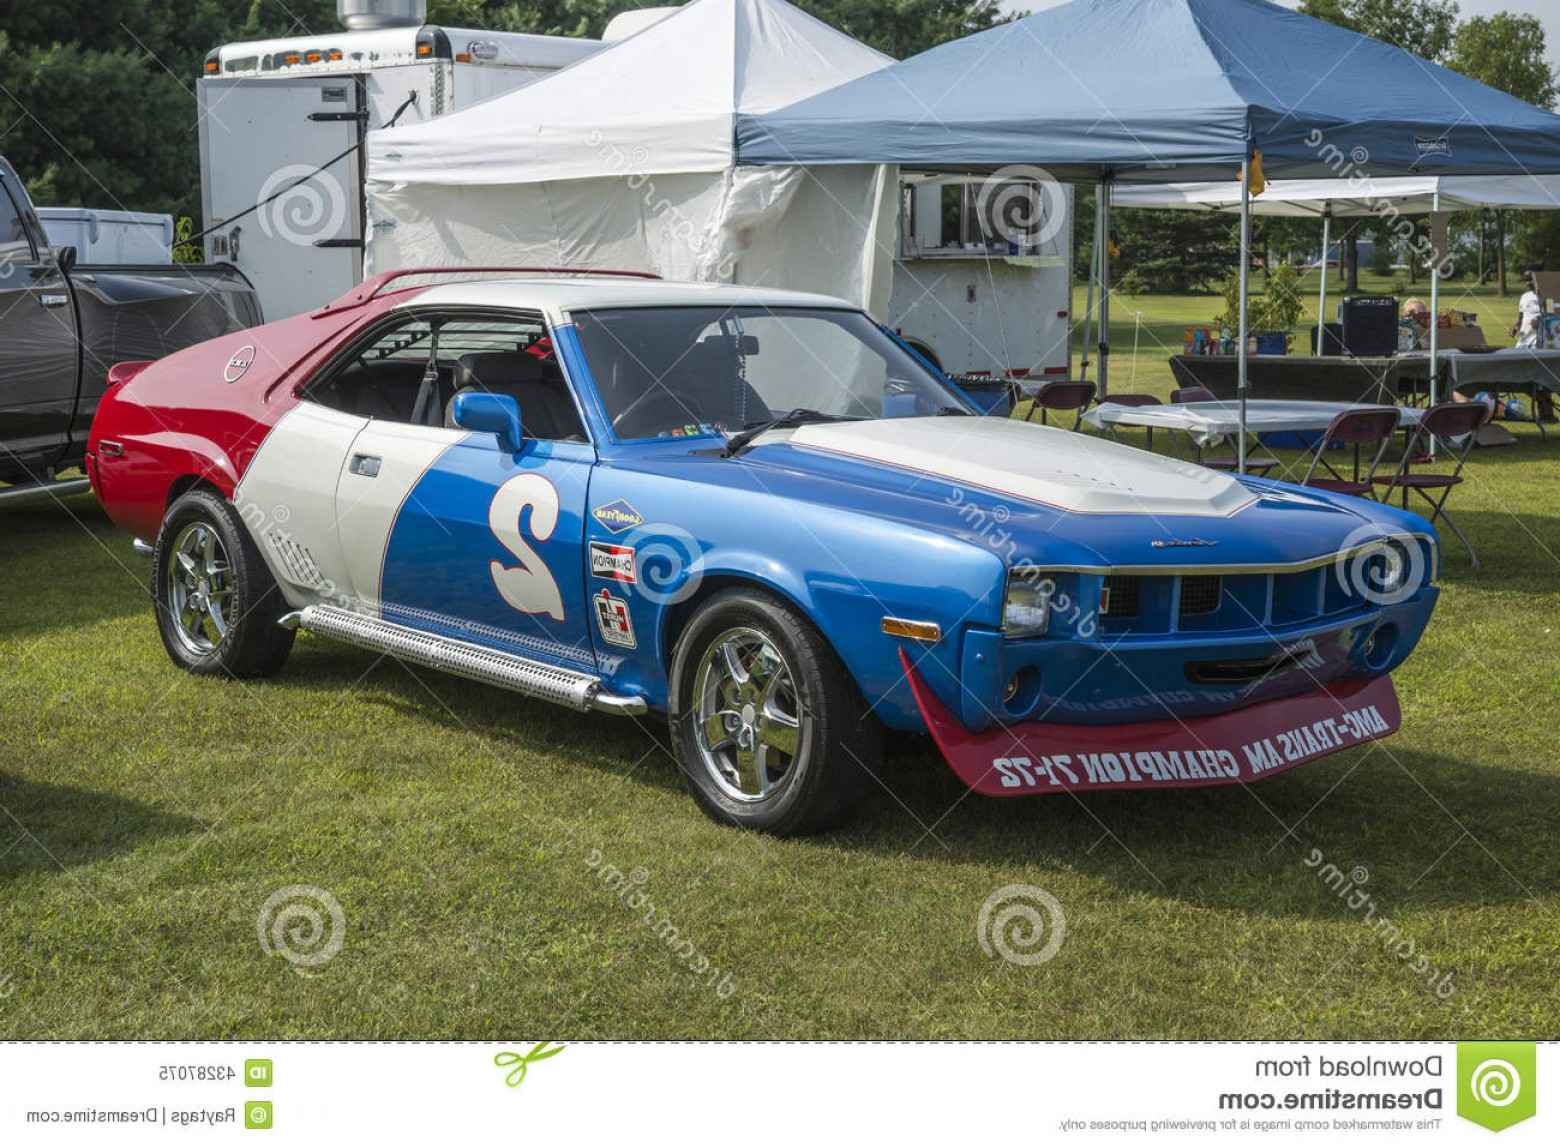 Race Car Grill Vector: Editorial Image Amx Race Car St Liboire August Picture Blue White Red Mopar Convention Image